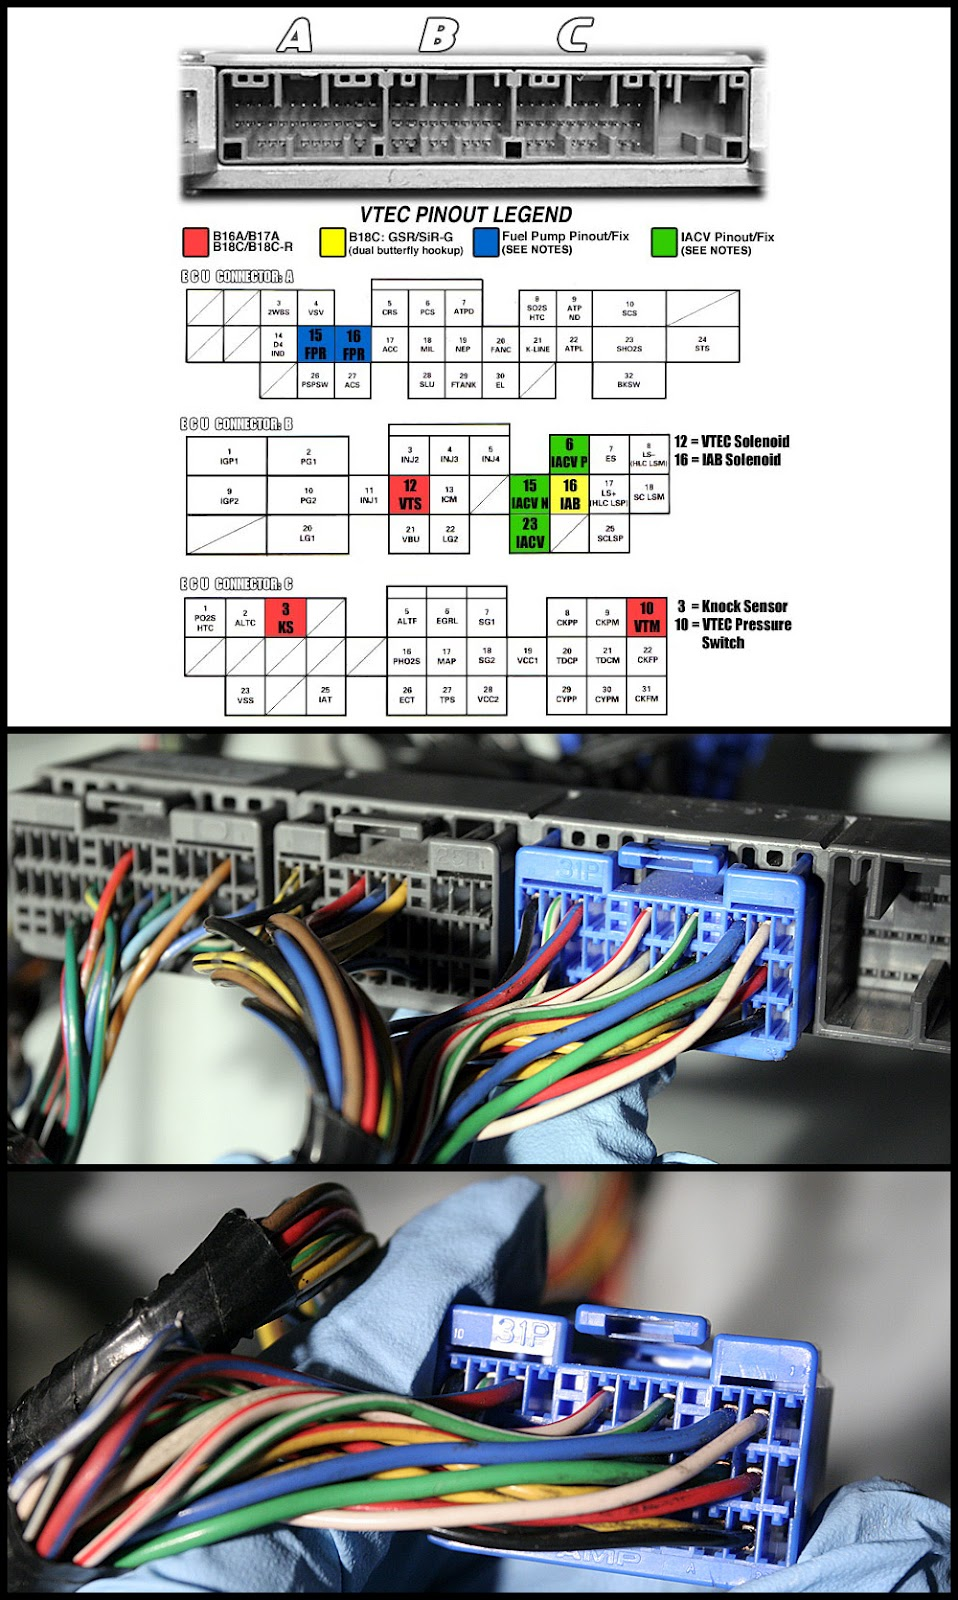 obd2 to obd1 wiring diagram wire management wiring diagram obd2 to obd1 wiring diagram [ 958 x 1600 Pixel ]